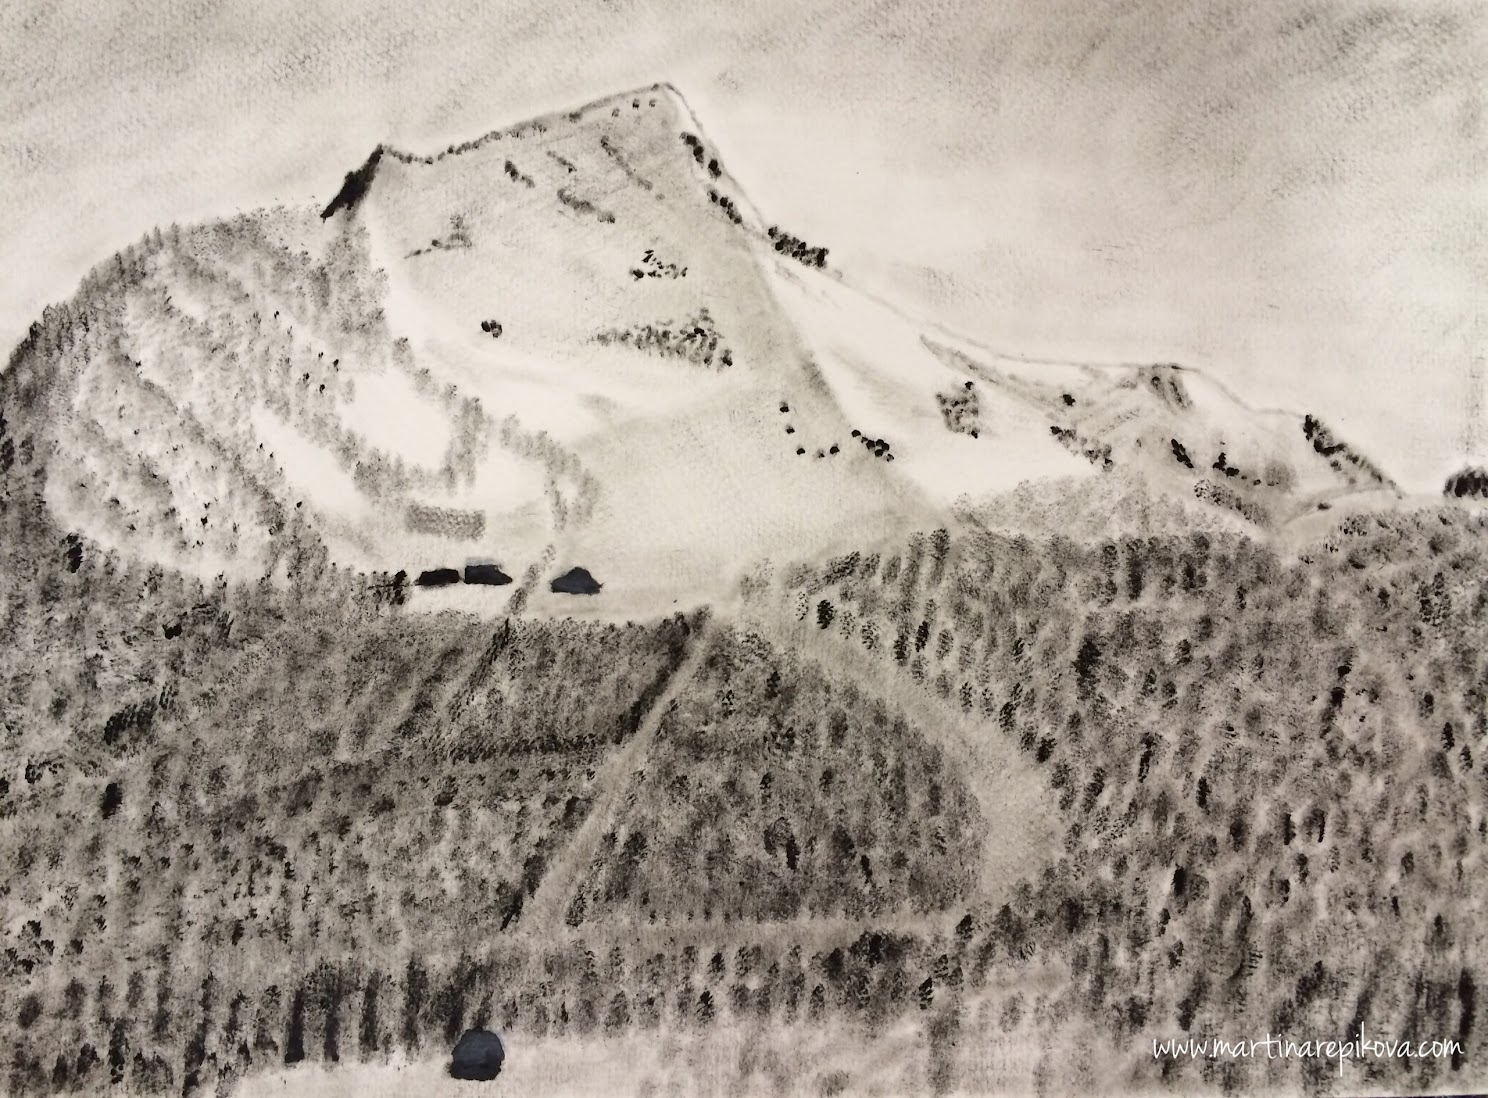 A mountain (Dry Brush painting)